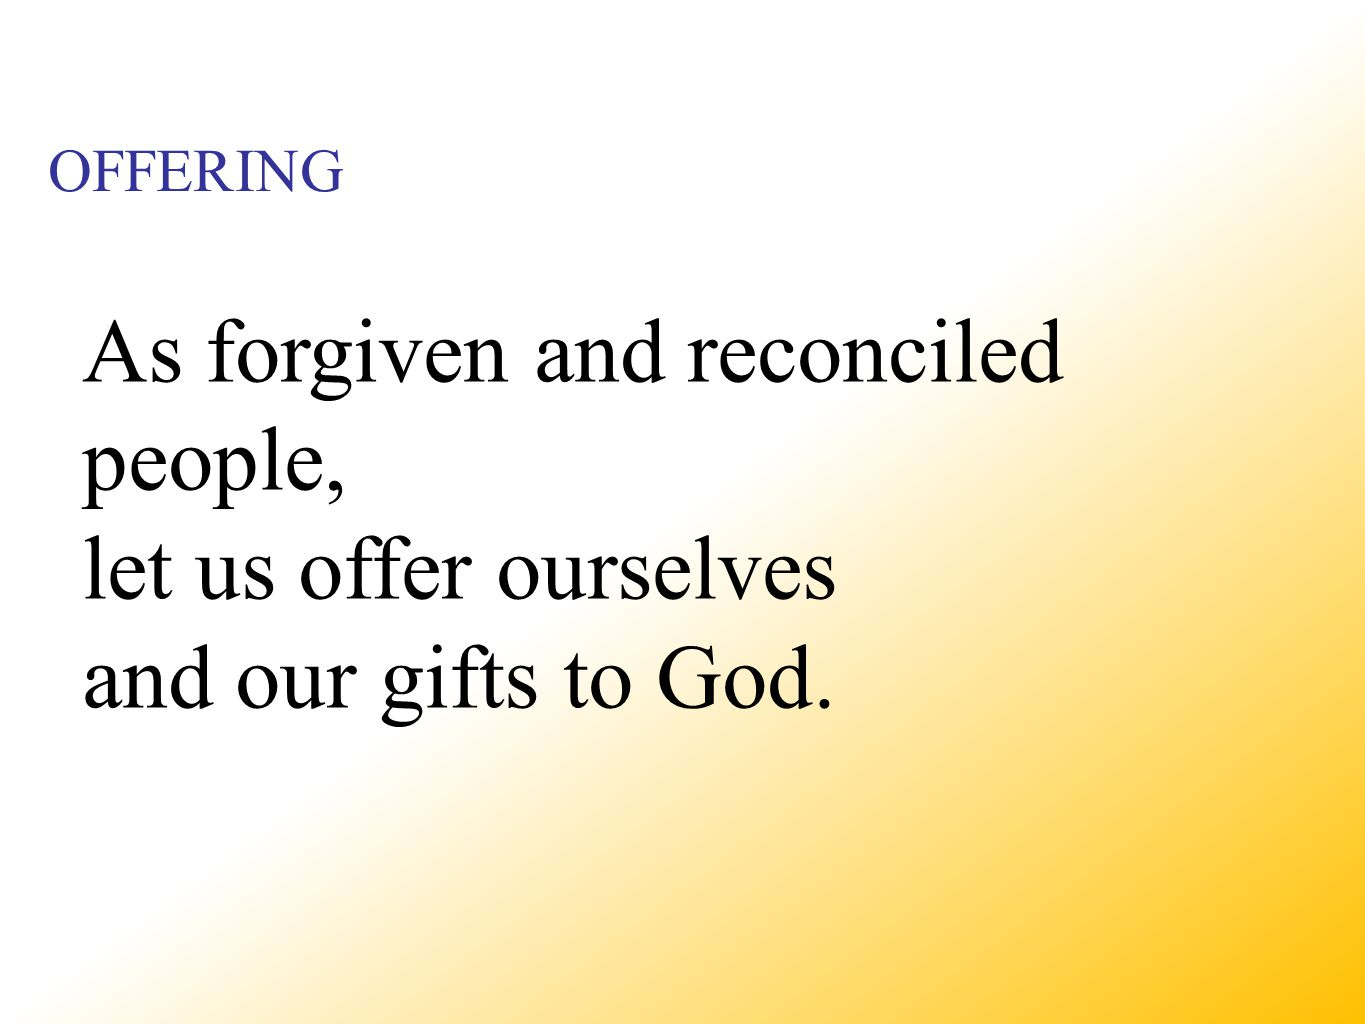 OFFERING As forgiven and reconciled people, let us offer ourselves and our gifts to God.